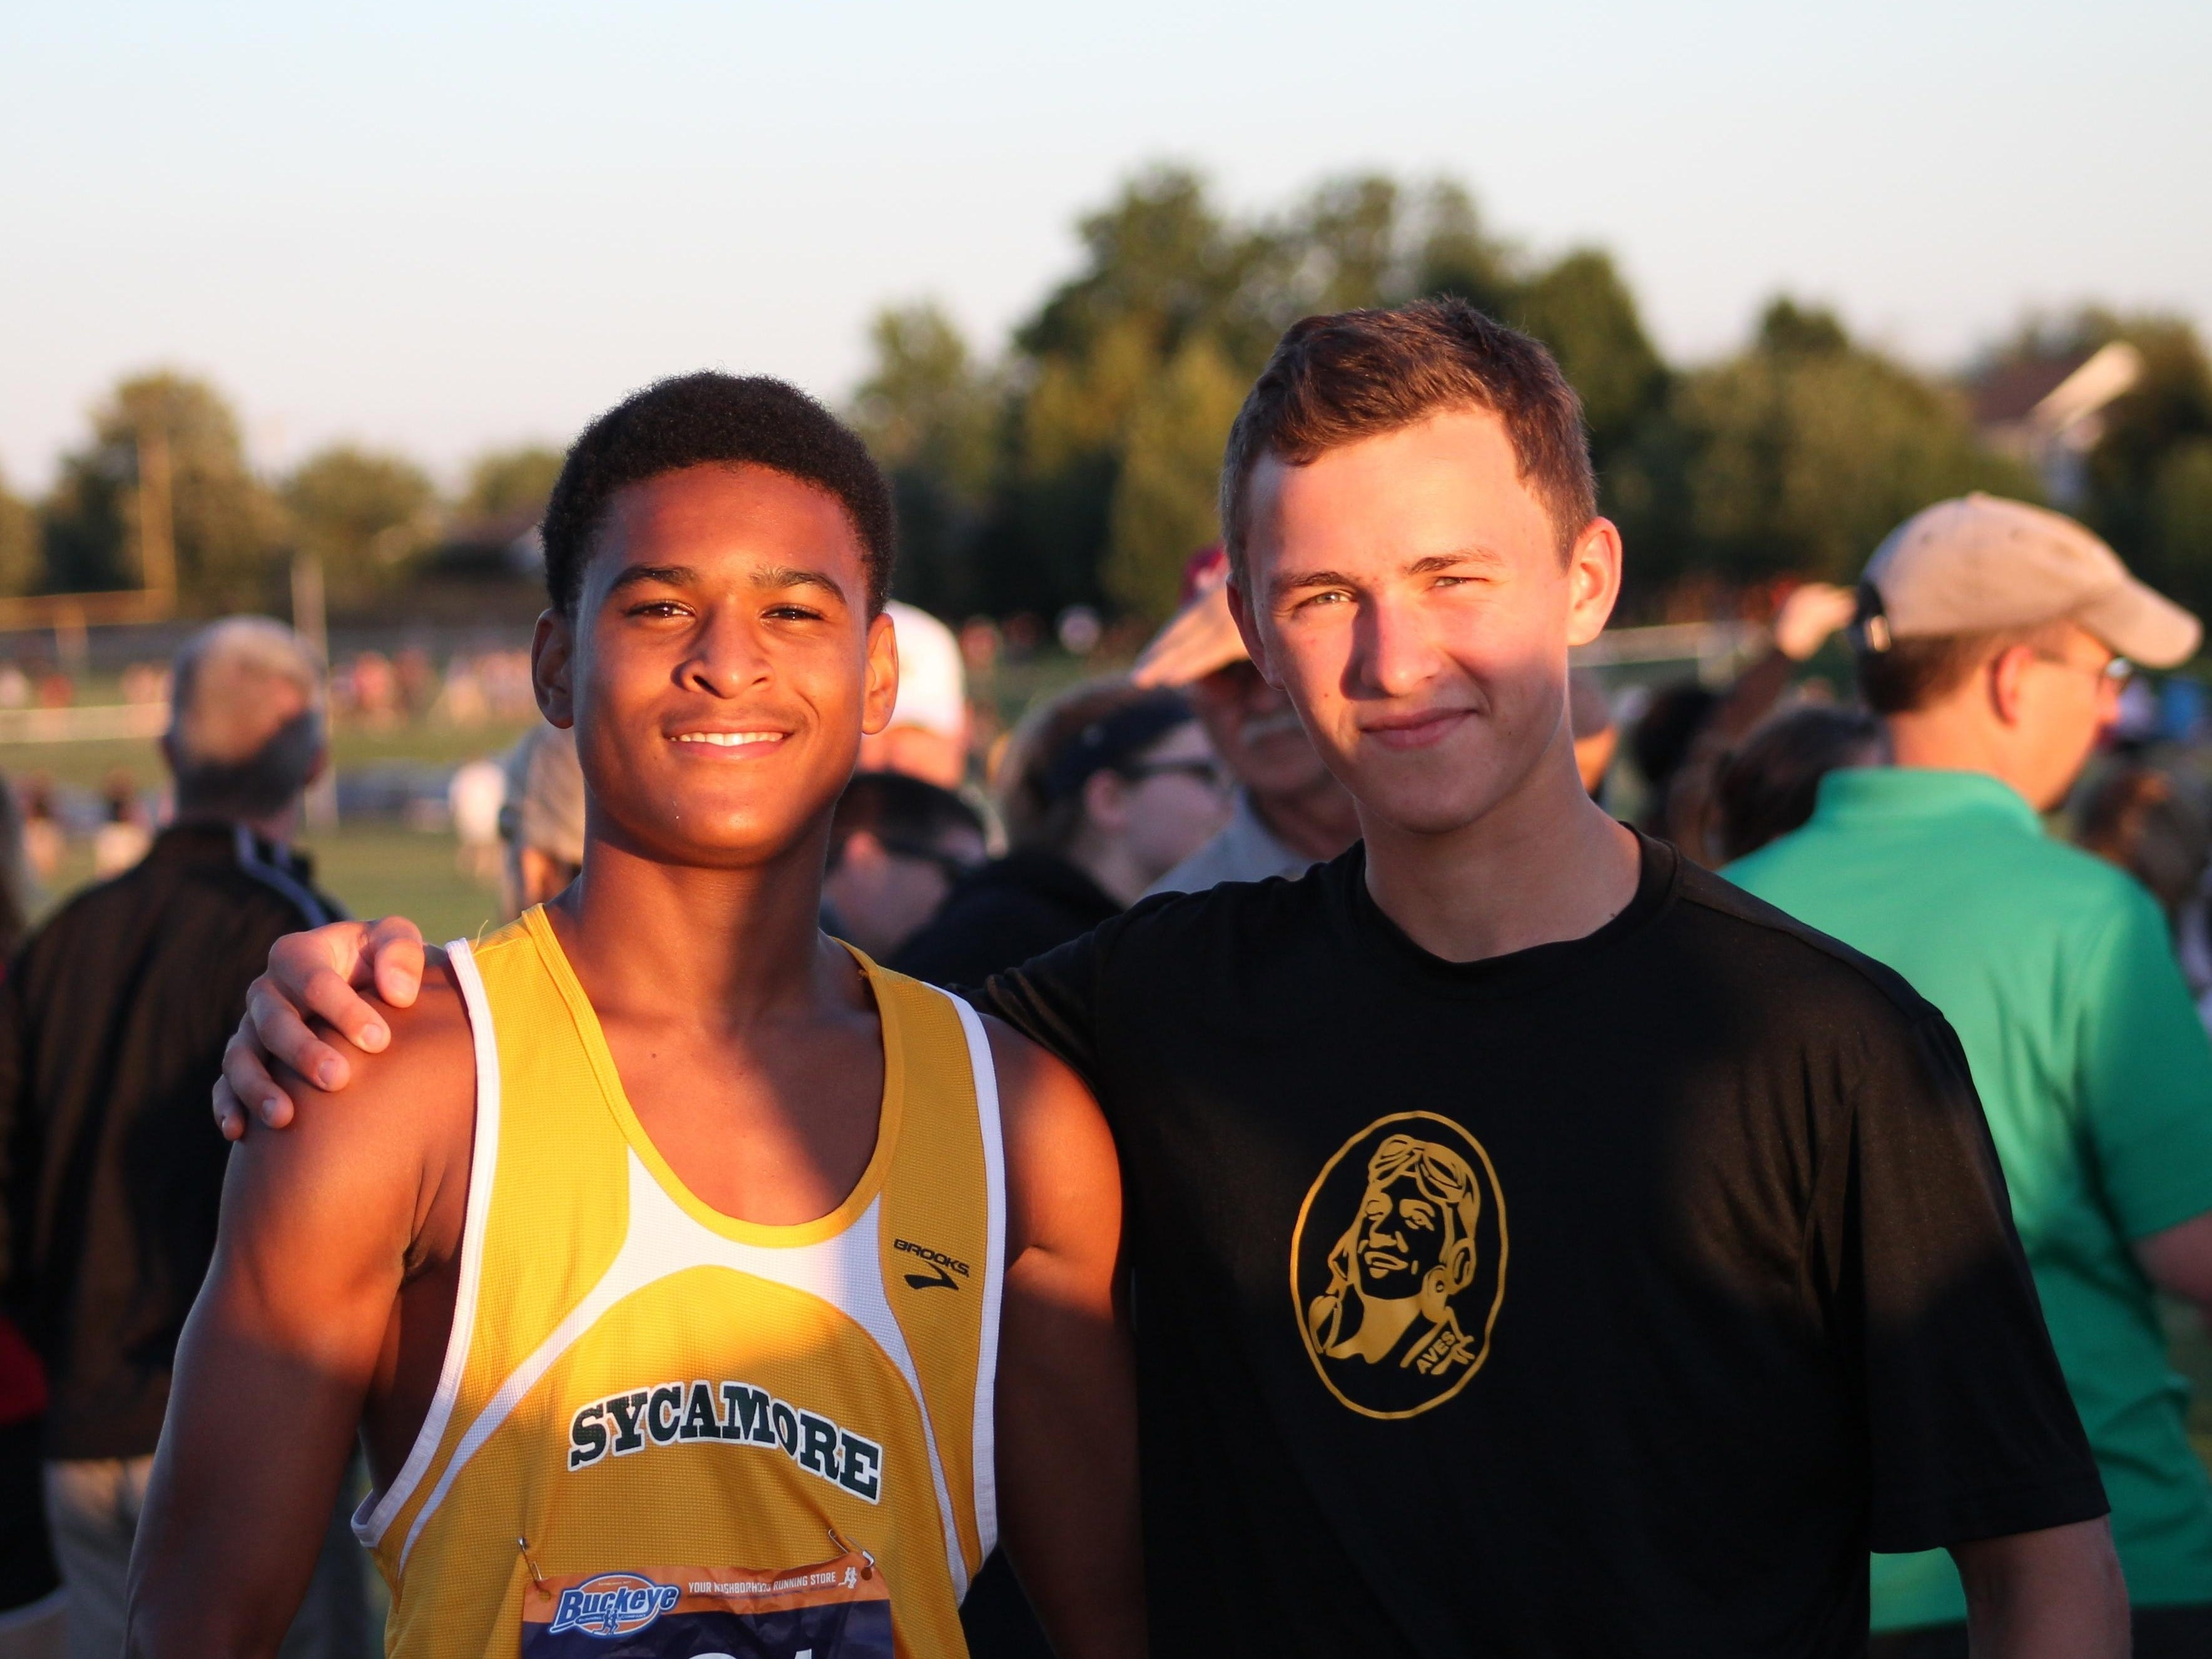 Sycamore seniors Kyria Graves, left, and Mitch Singstock are among the veterans of the Aves cross country team.